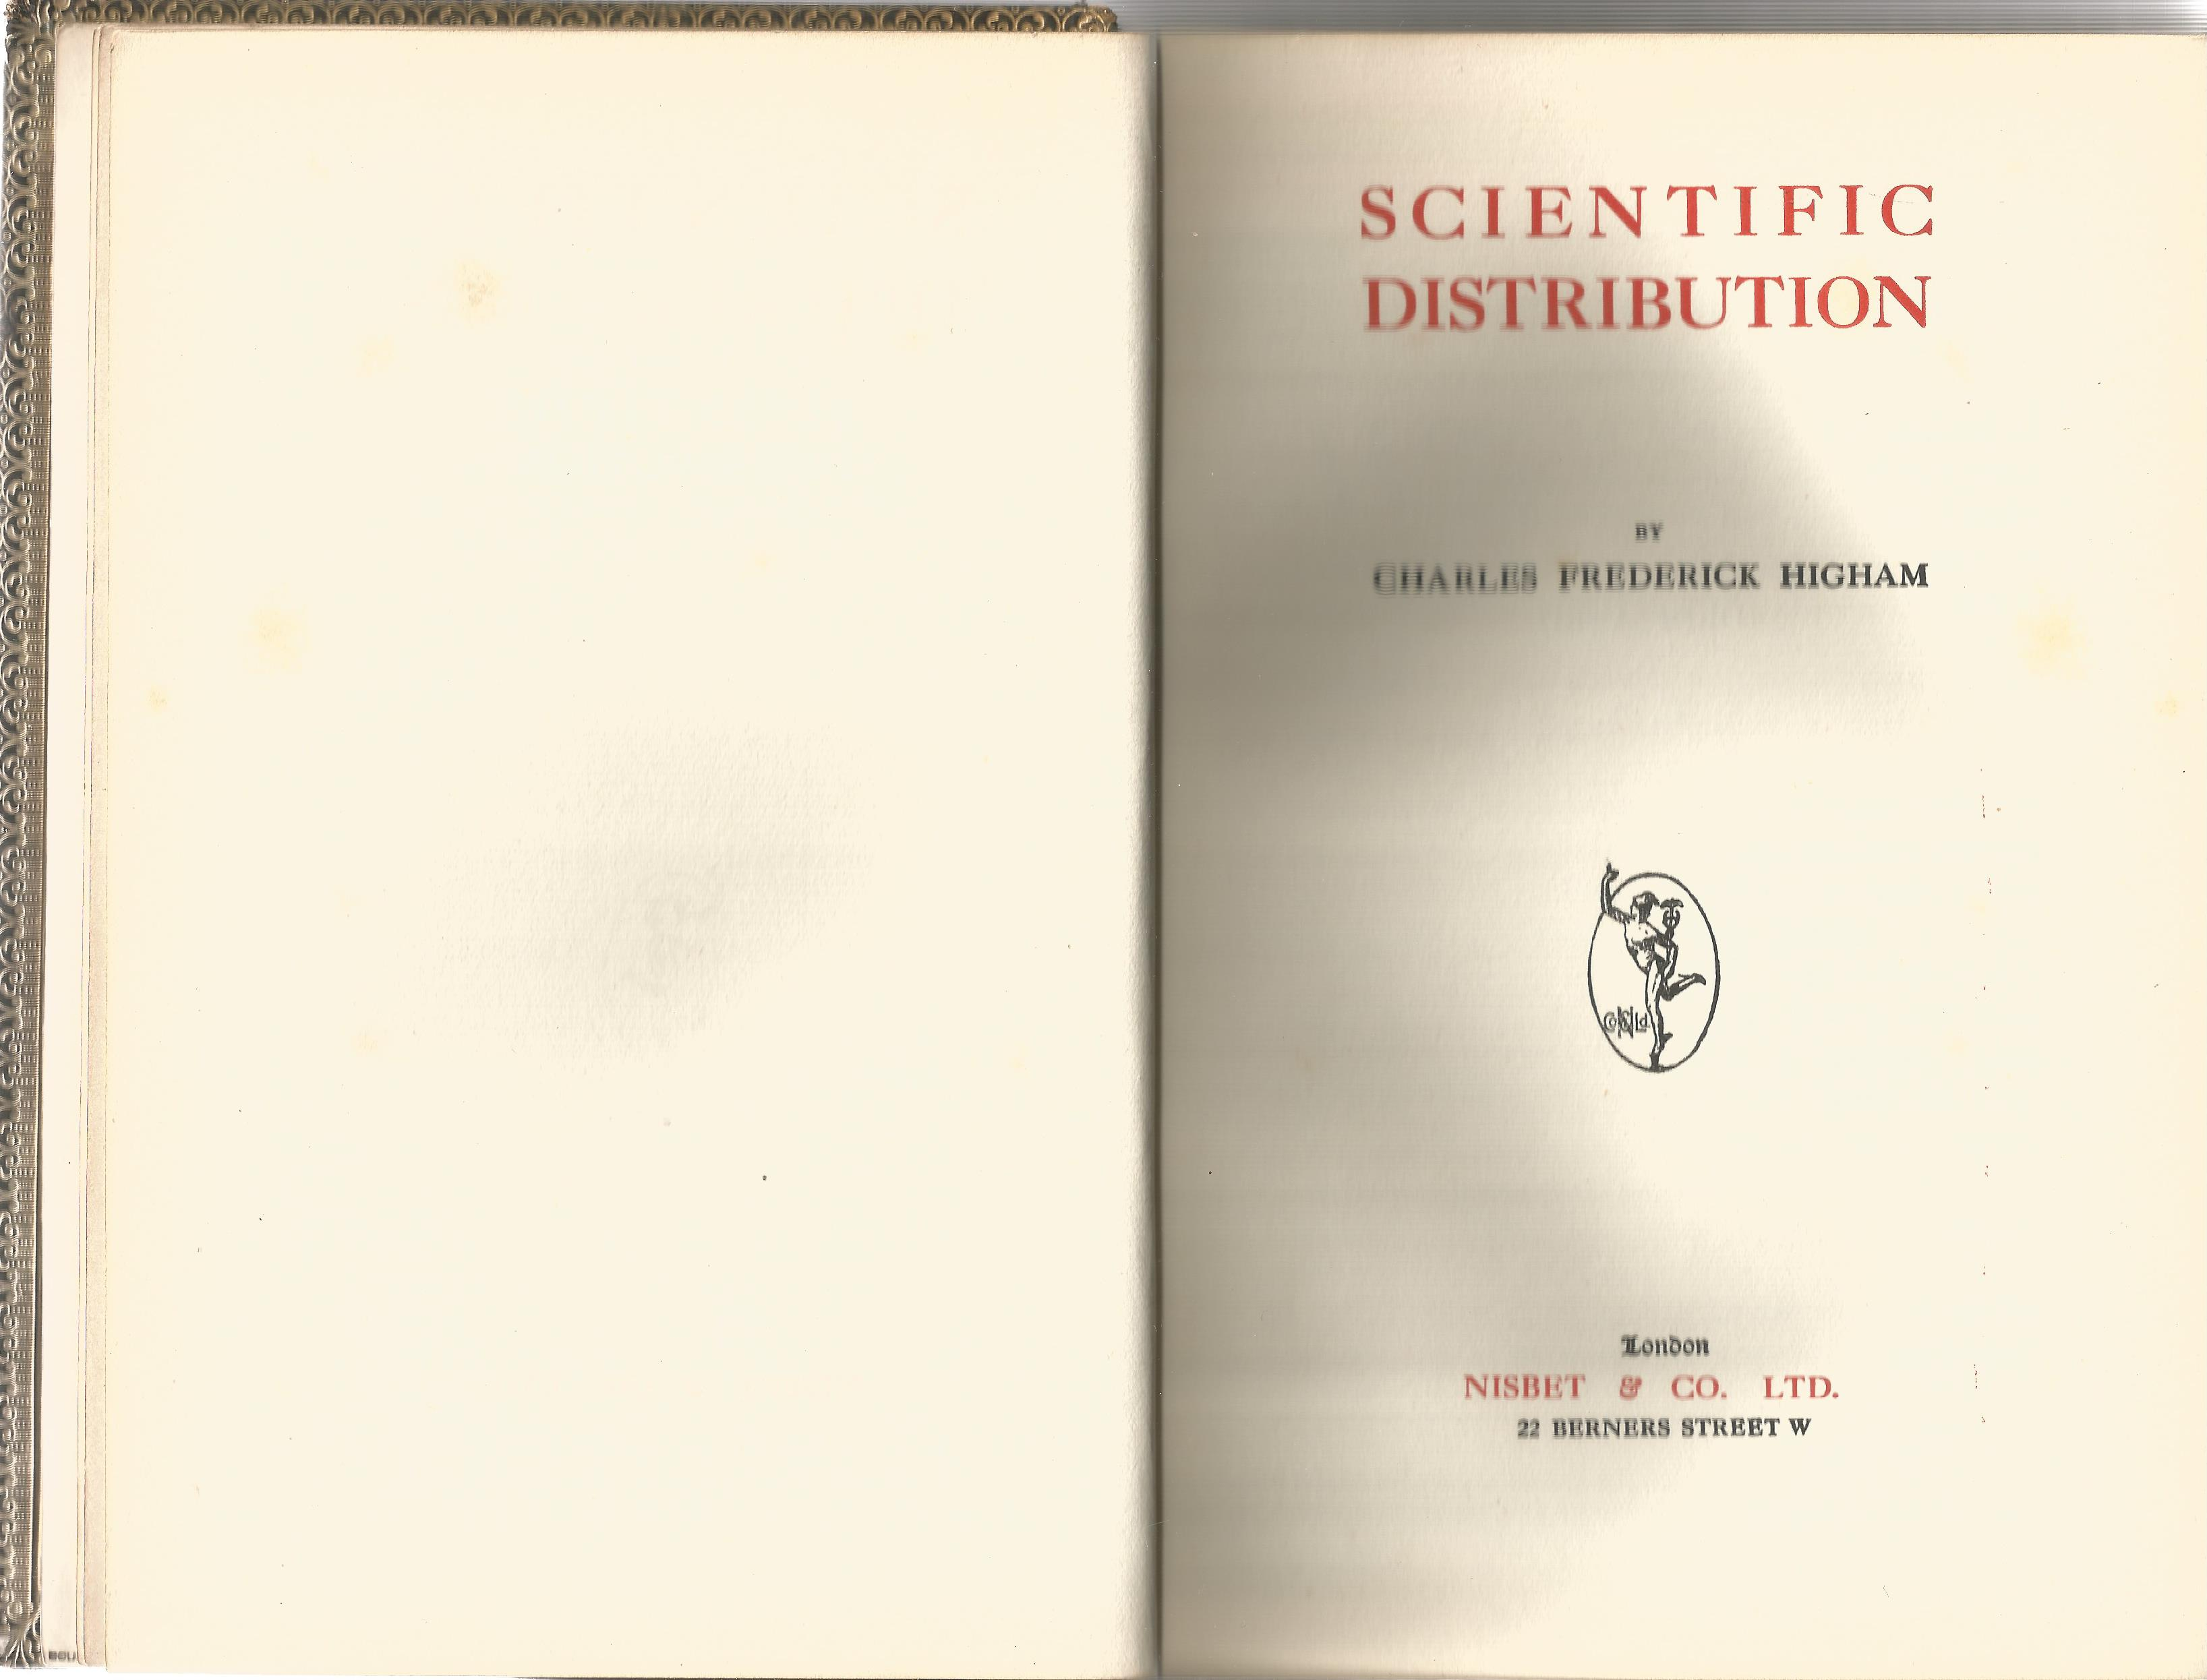 Charles Frederick Higham. Scientific Distribution. A Second Edition hardback book. Signed by Charles - Image 2 of 3